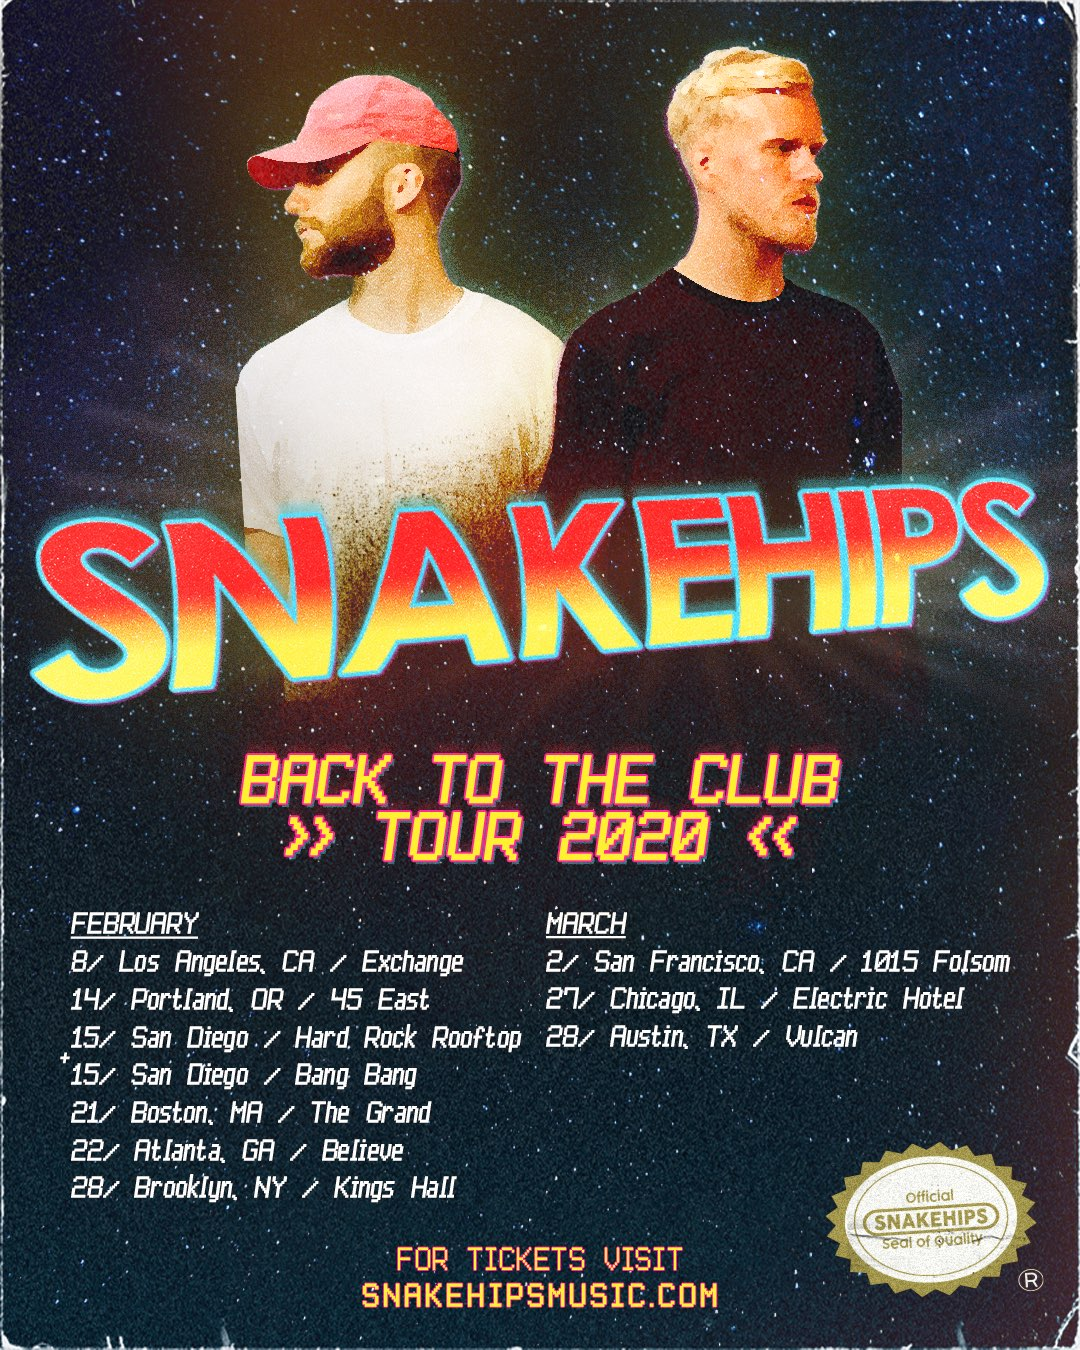 Snakehips' Back To The Club Tour 2020